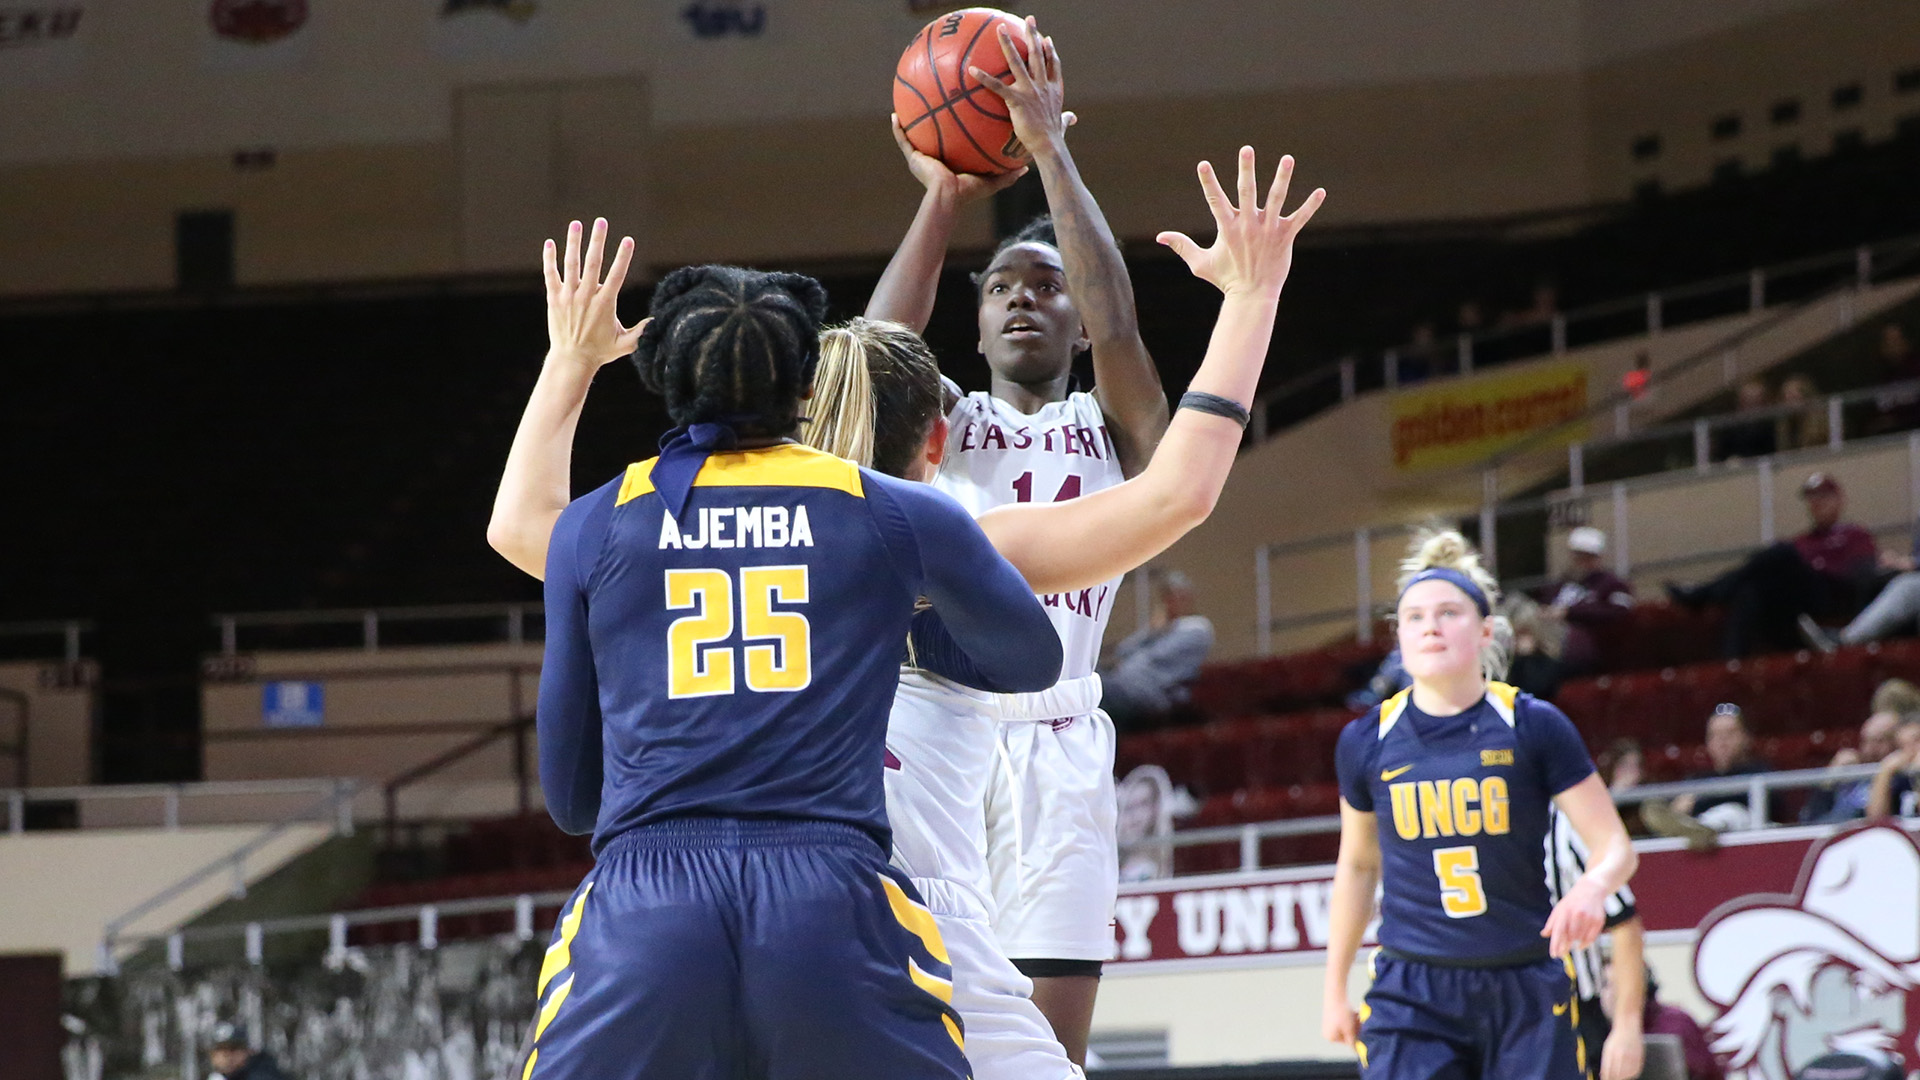 Solomon scores career-high, but women's basketball fall to Akron, 62-45